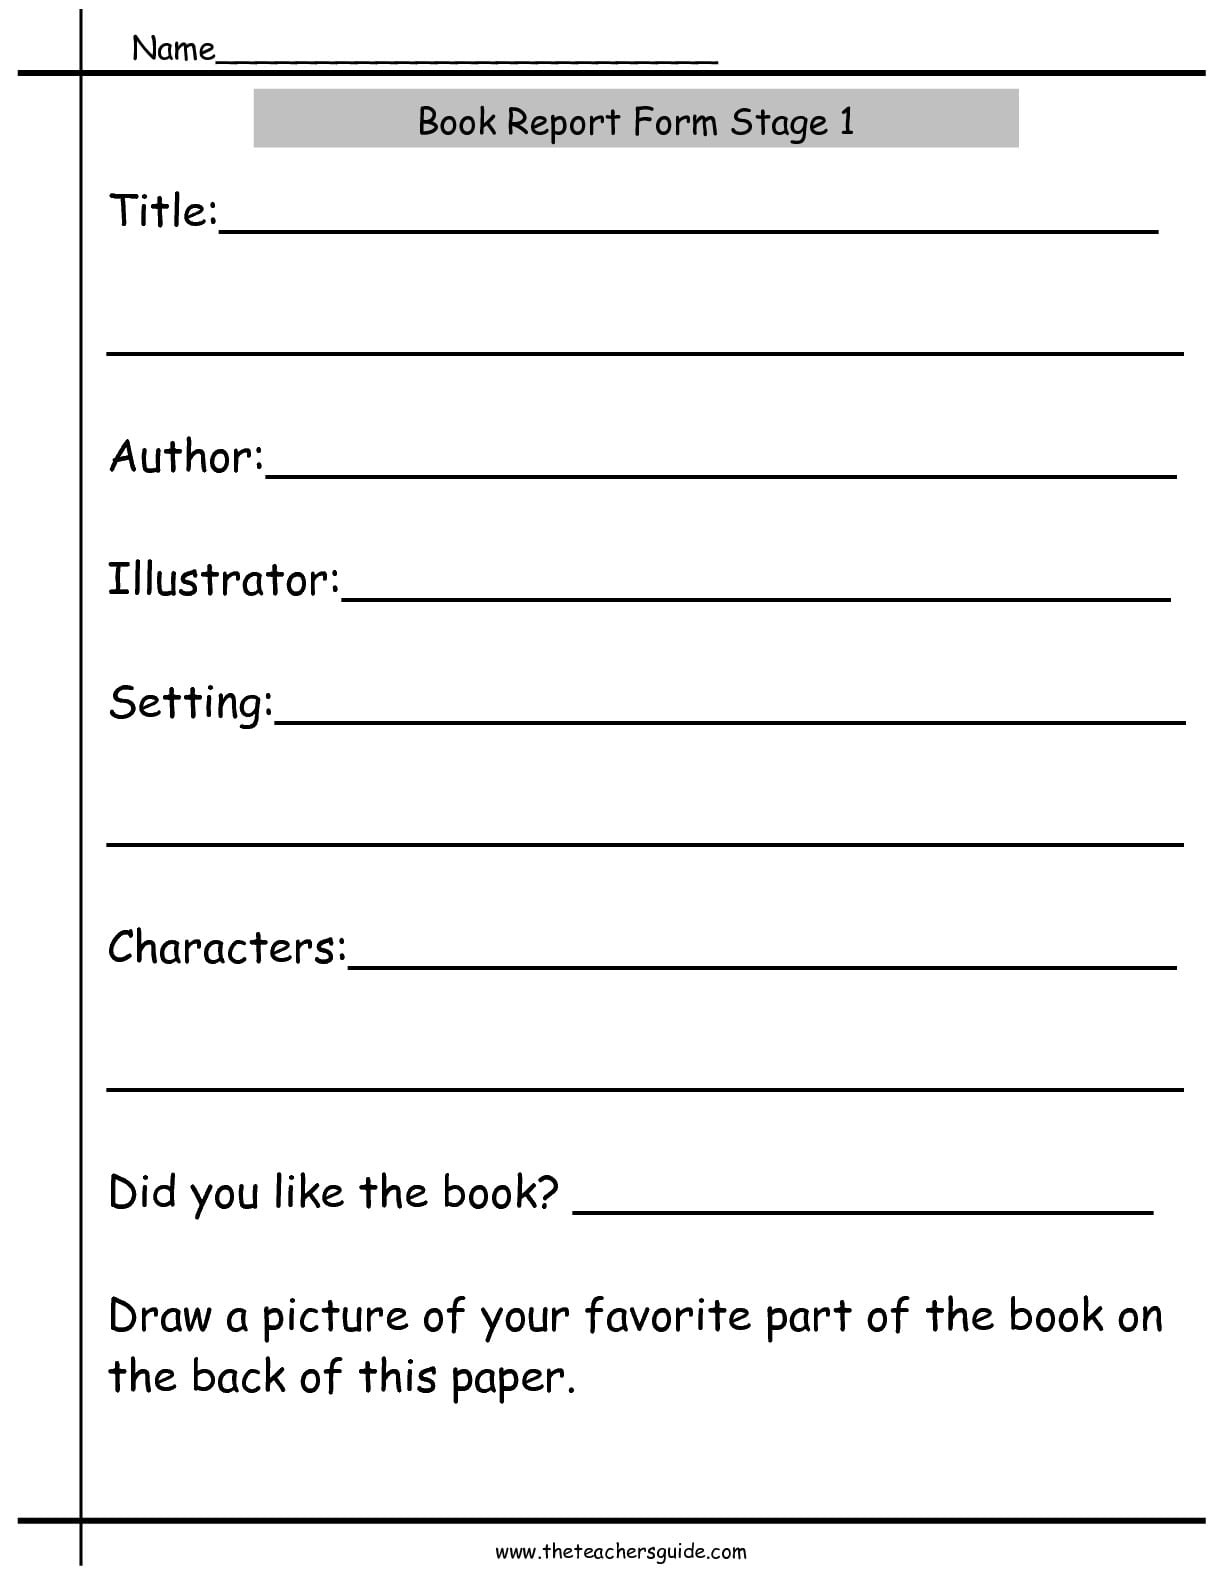 Worksheet Templates For Teachers